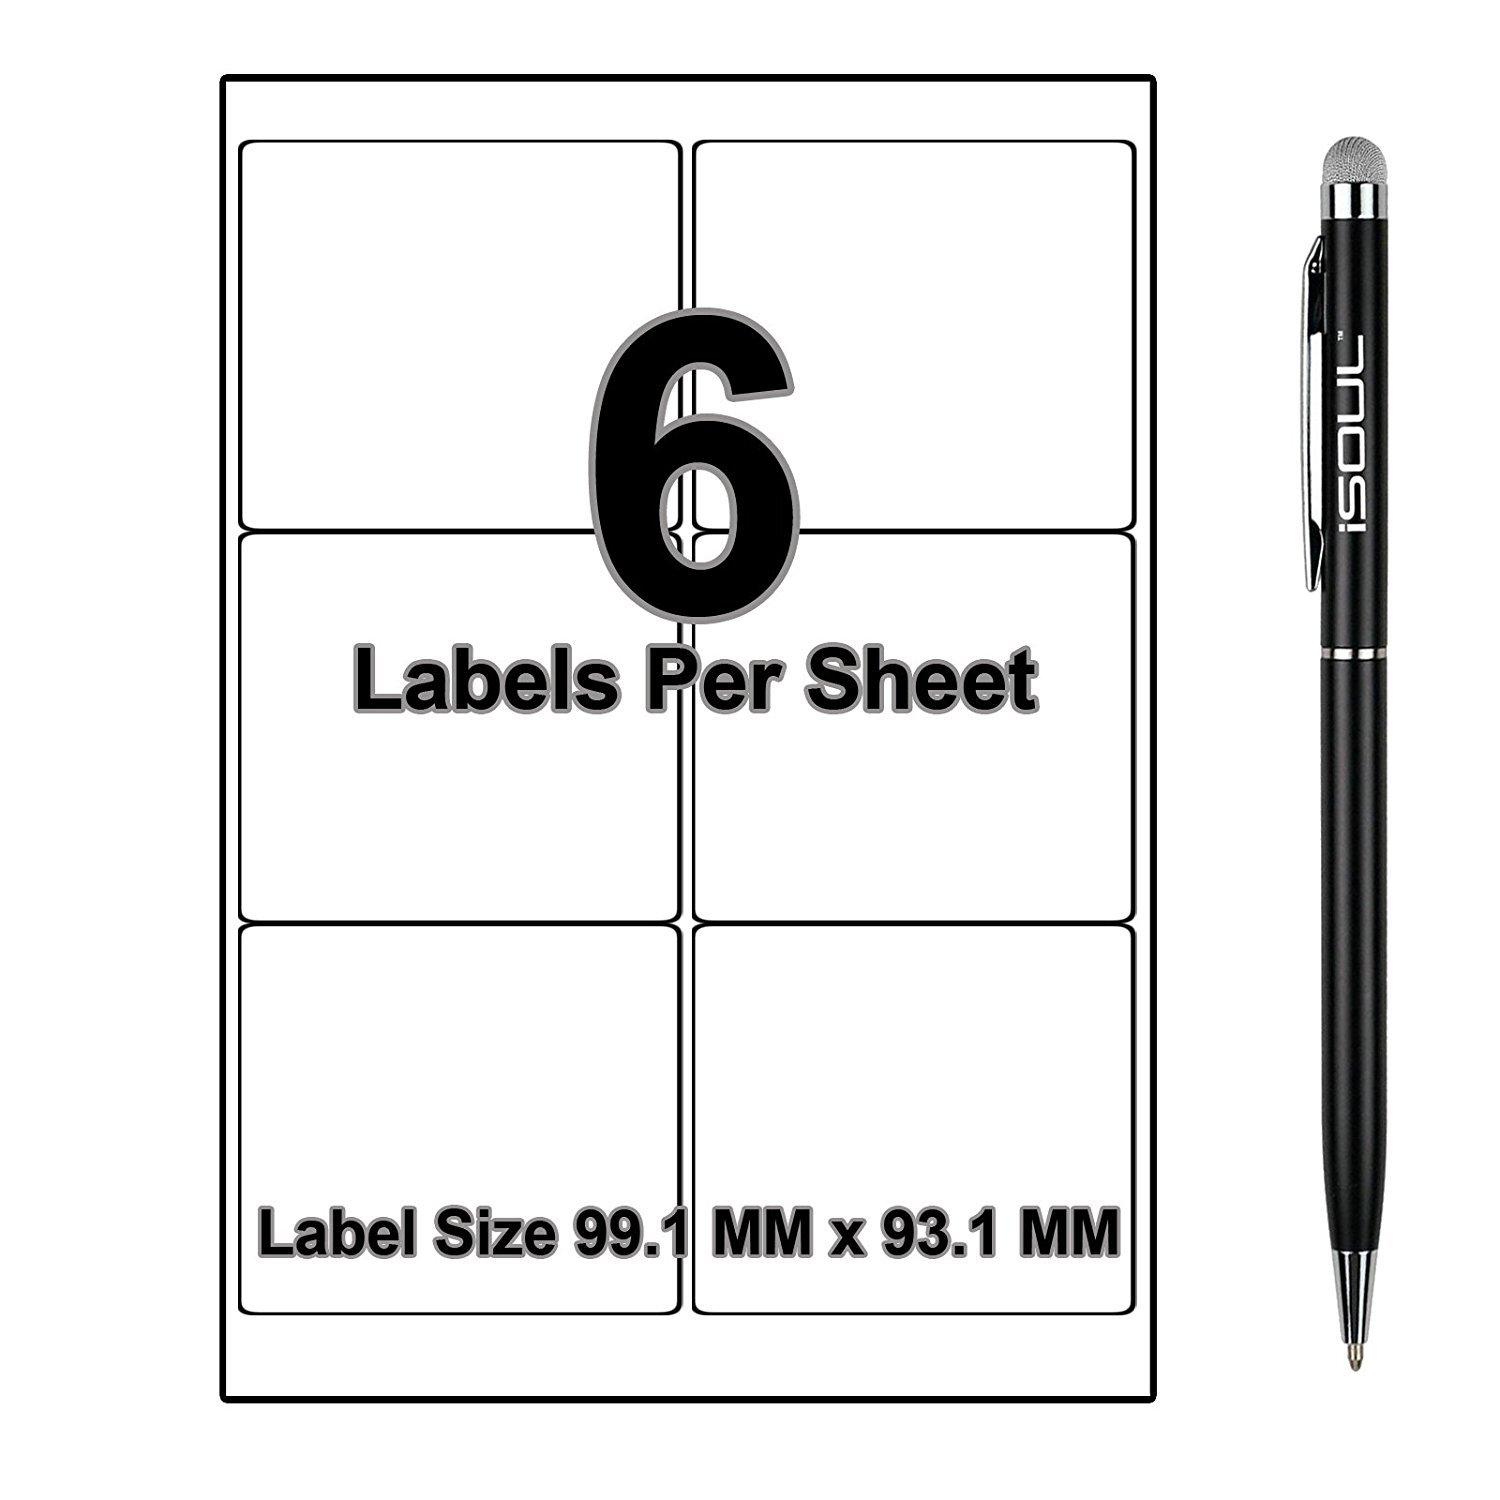 Printable with Laser Inkjet or Copier 101.6 x 50.8mm 10 Labels Per Sheet 20 Sheets Self-Adhesive A4 Addressing Shipping Stickers aLABELS4U/™ Product